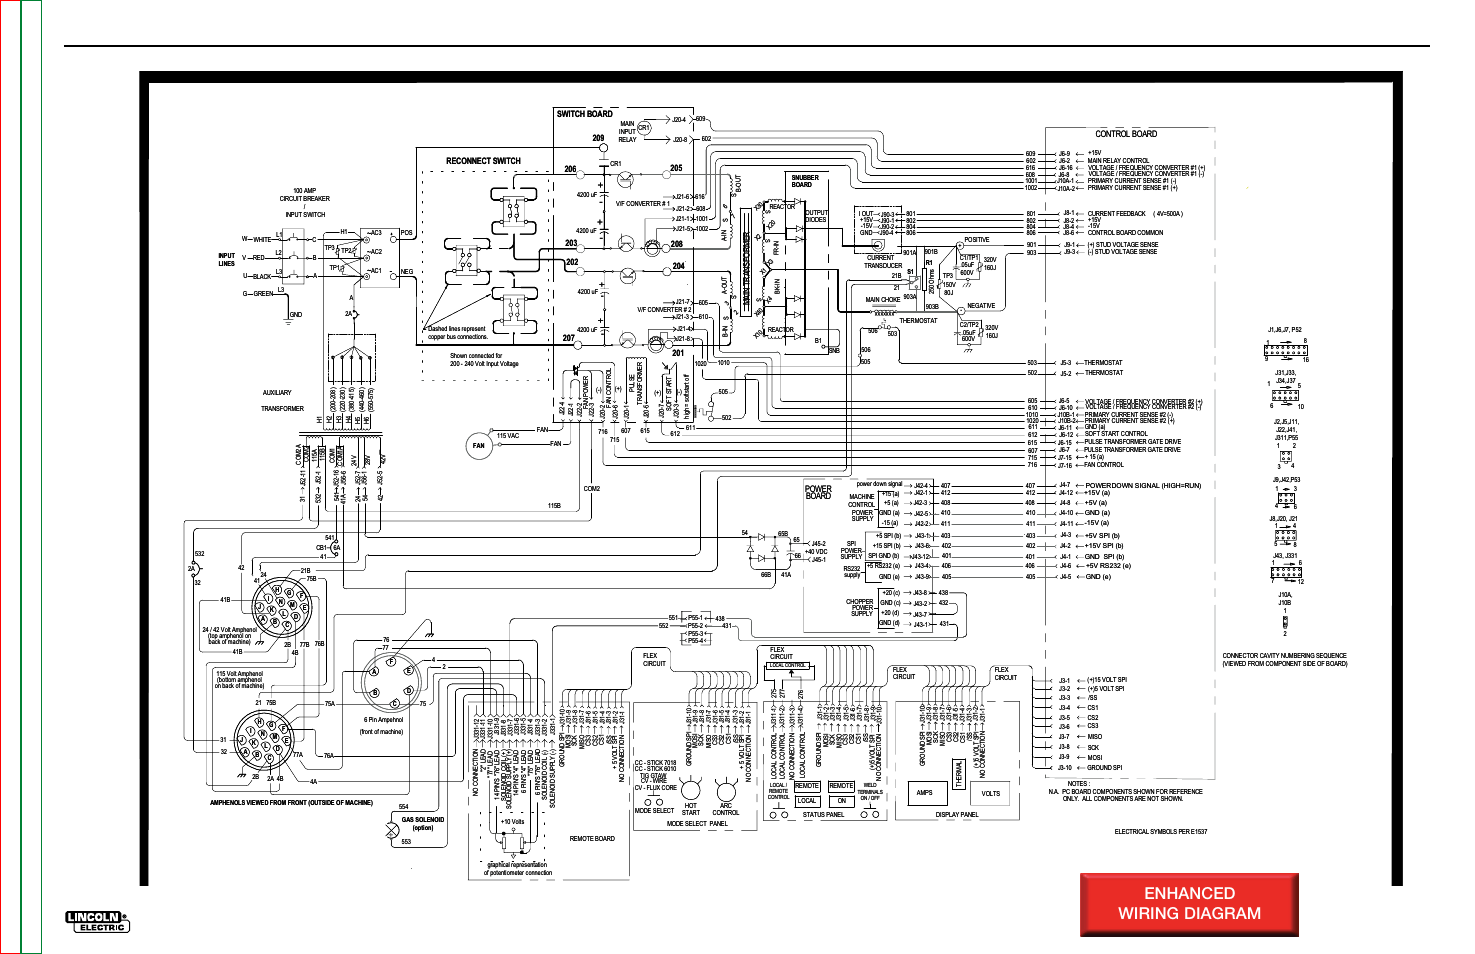 Electrical diagrams, Enhanced wiring diagram, Schematic